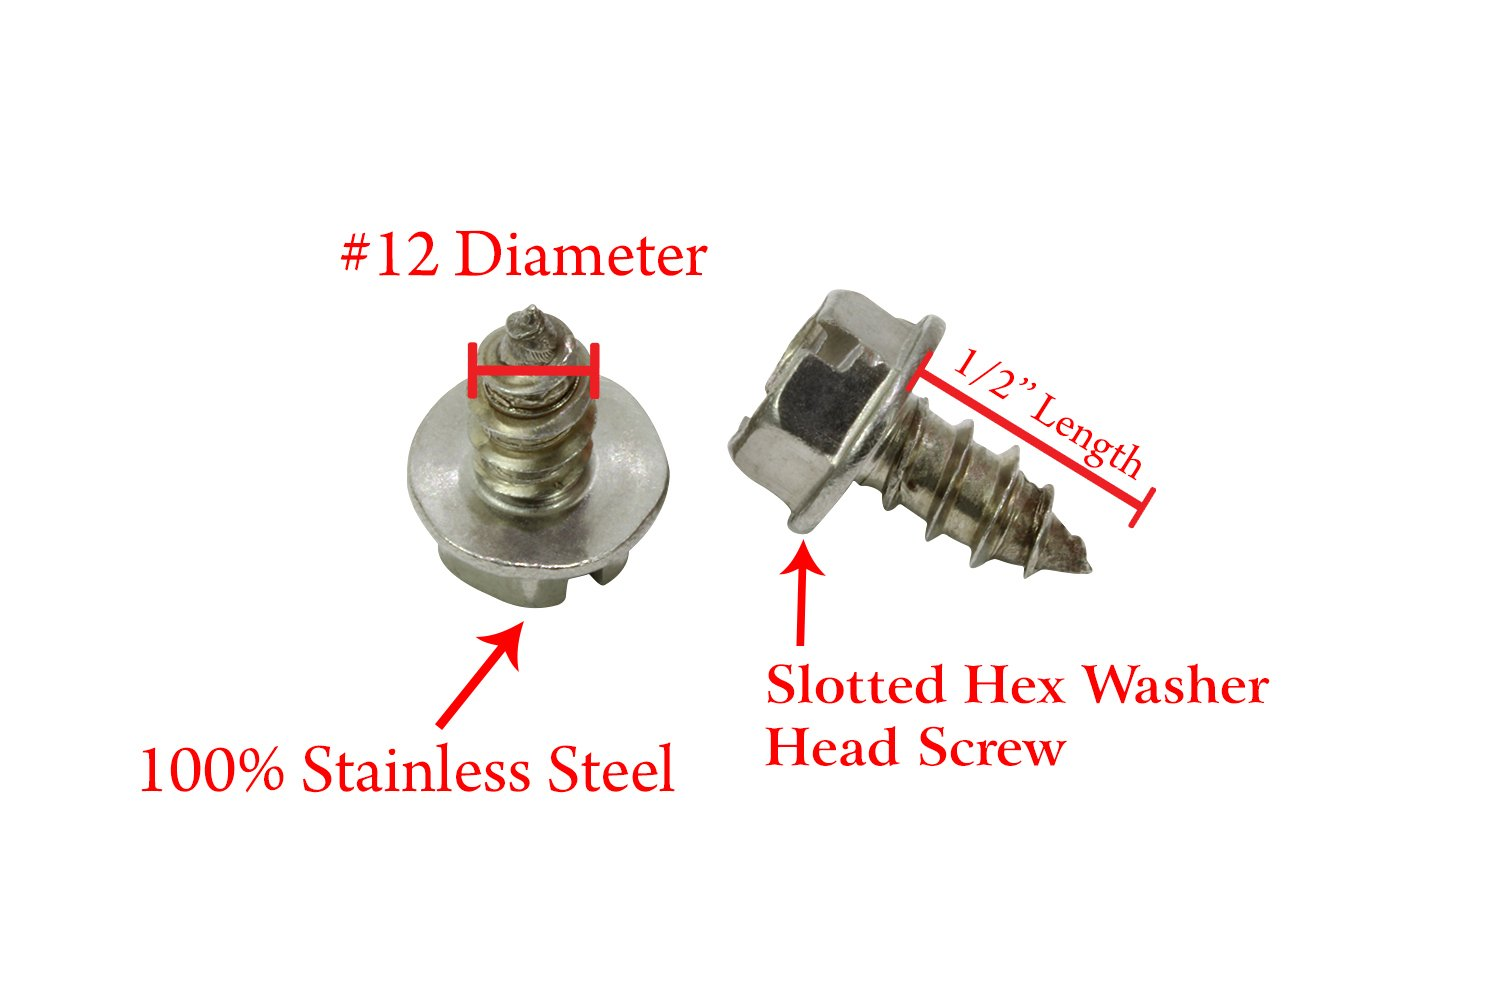 #12 X 1//2 Stainless Slotted Hex Washer Head Screw, 18-8 25 pc 304 Stainless Steel Screw by Bolt Dropper